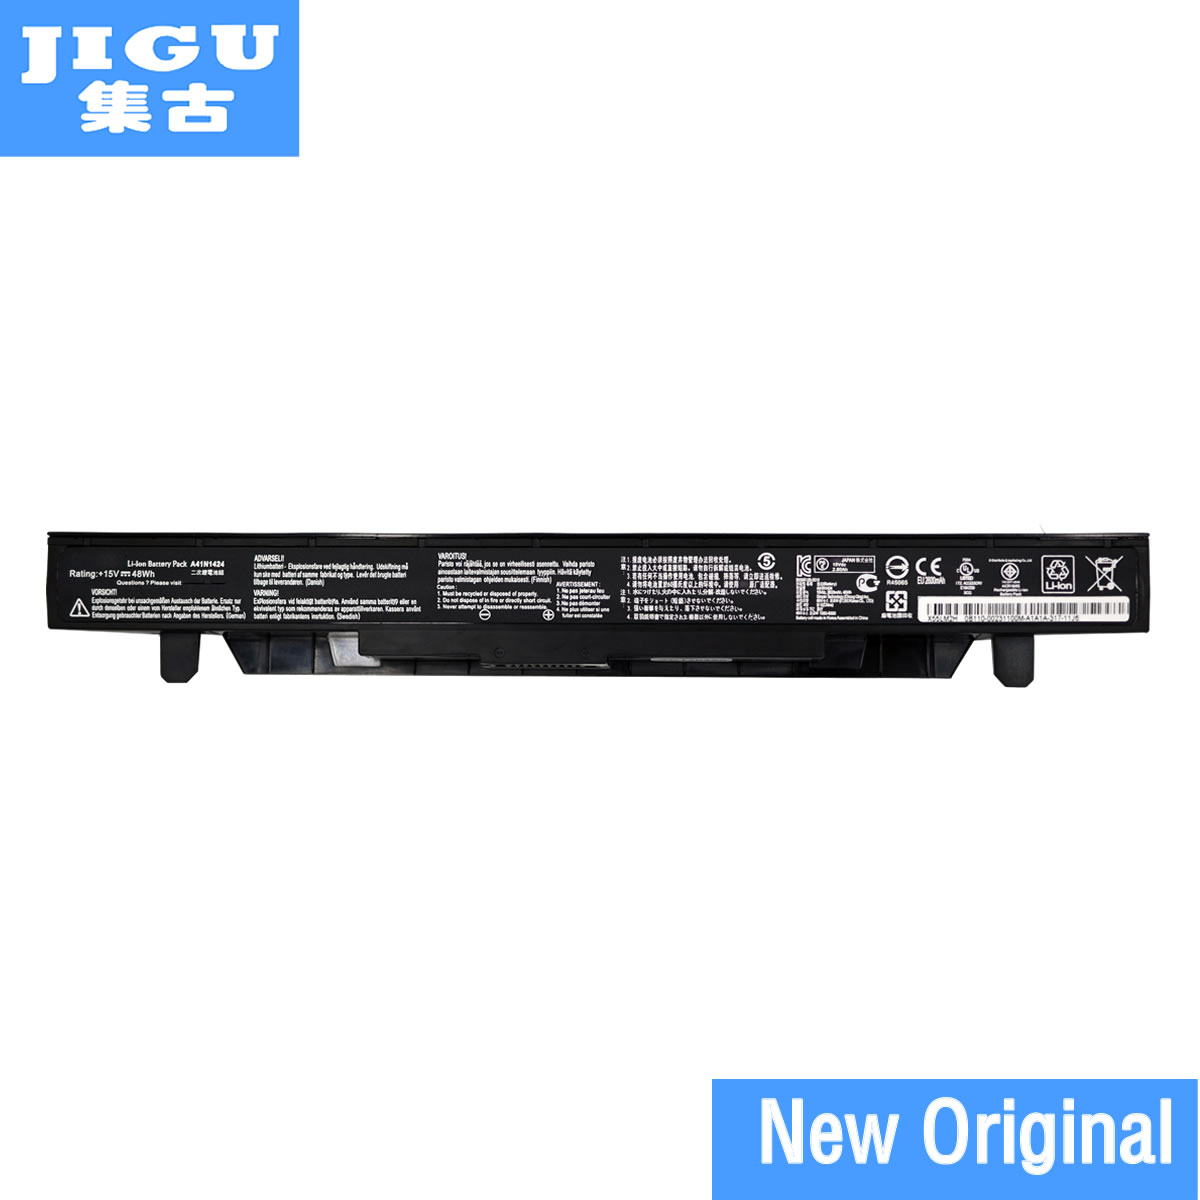 все цены на JIGU Original Laptop battery A41N1424 for Asus G552VX GL552 GL552J GL552JX GL552V GL552VW ZX50 ZX50J ZX50V